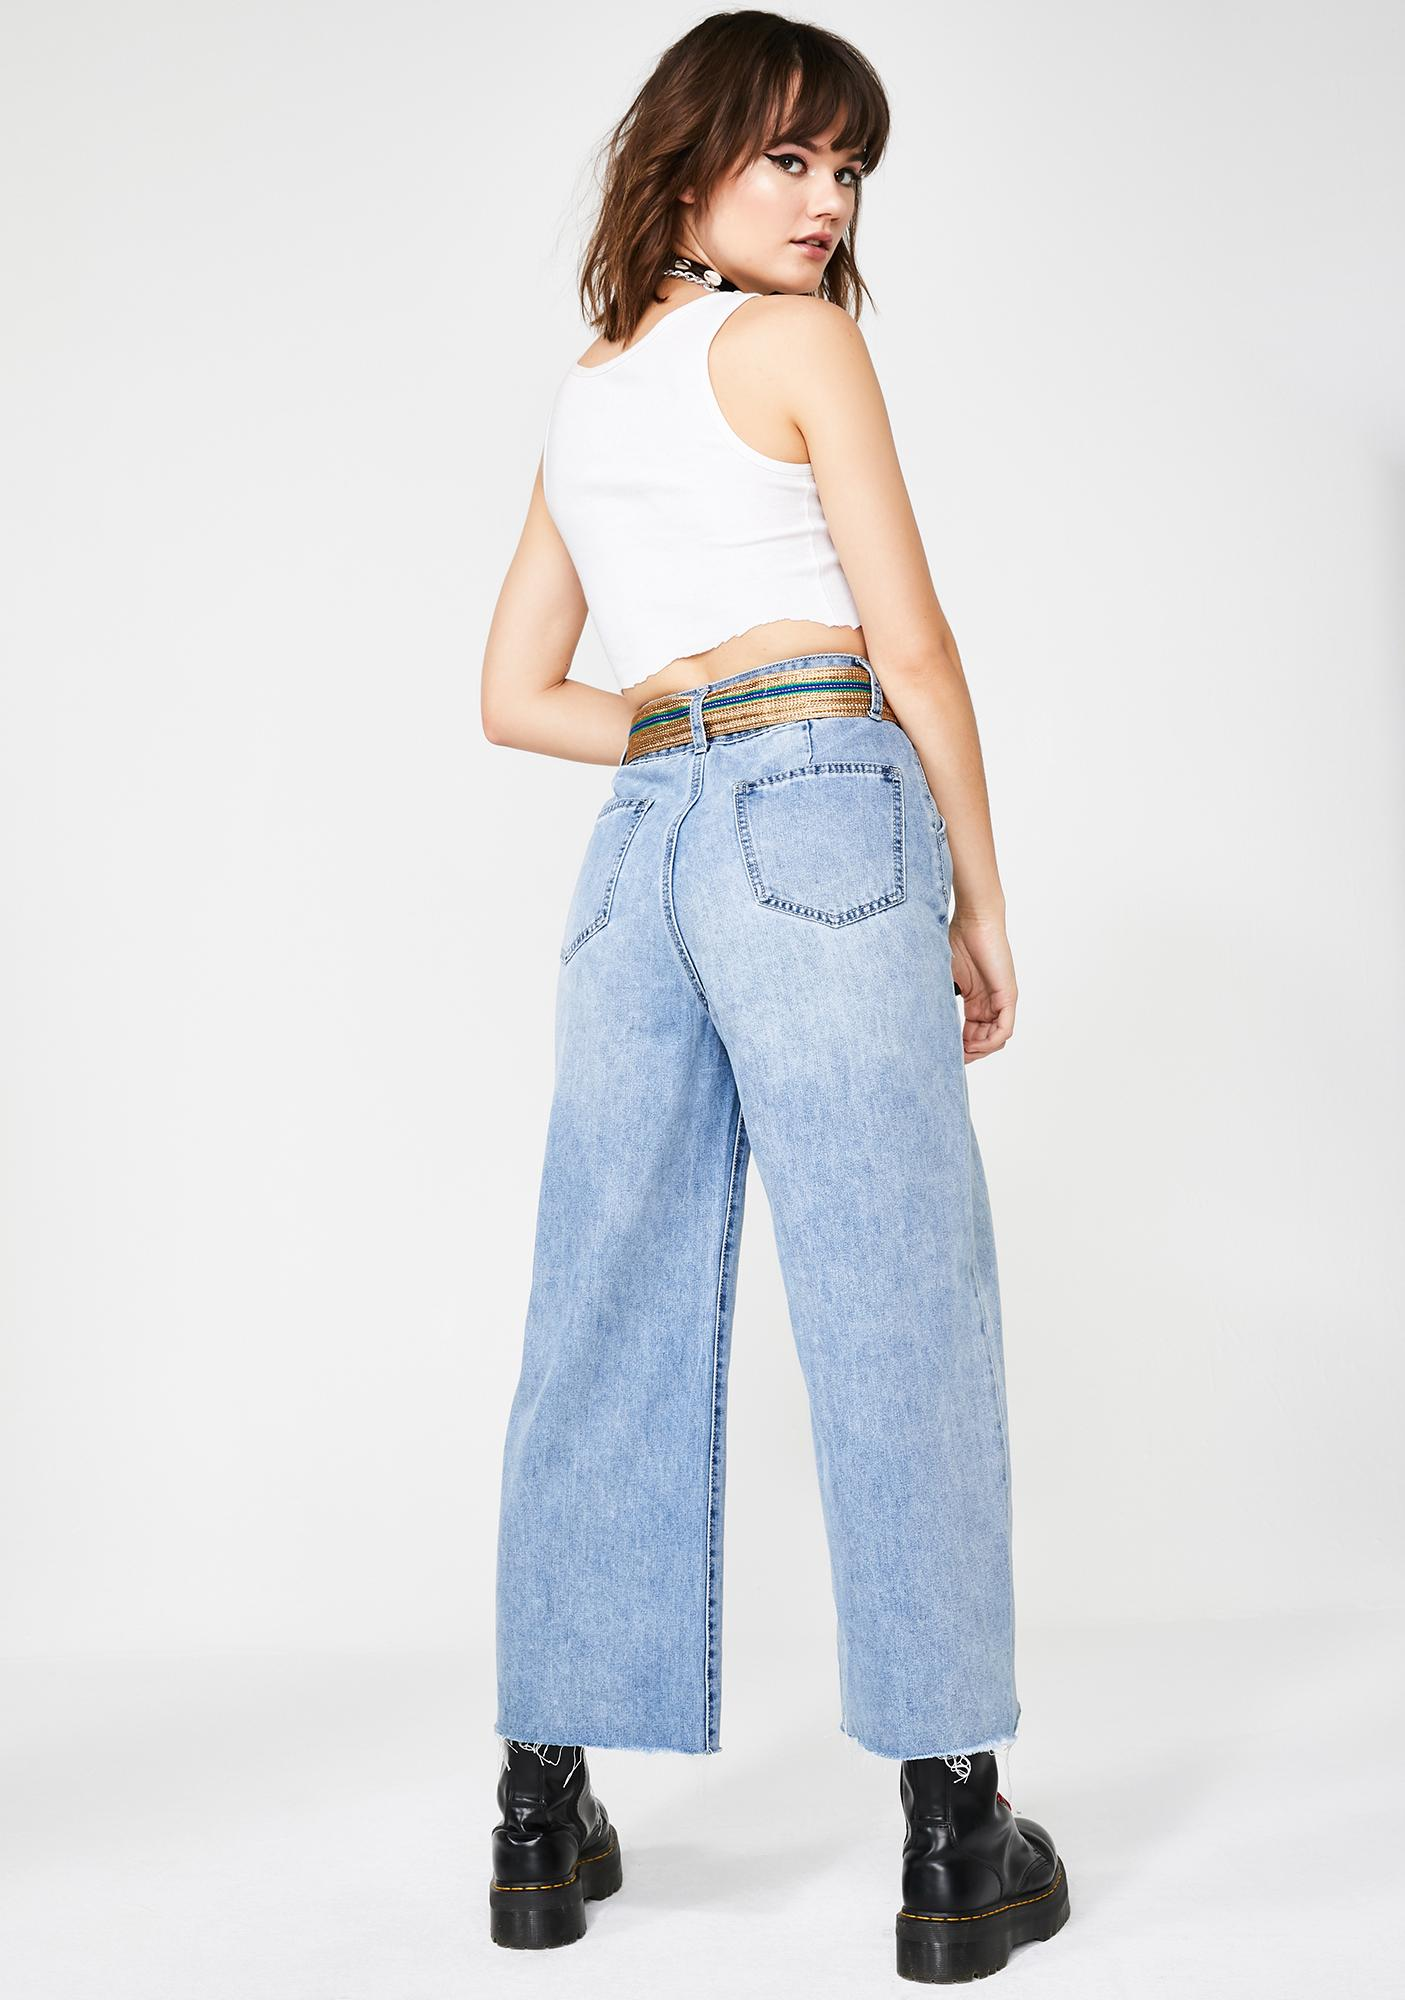 c6375ca9917 Molly Bracken Wide Leg Denim Jeans With Belt | Dolls Kill